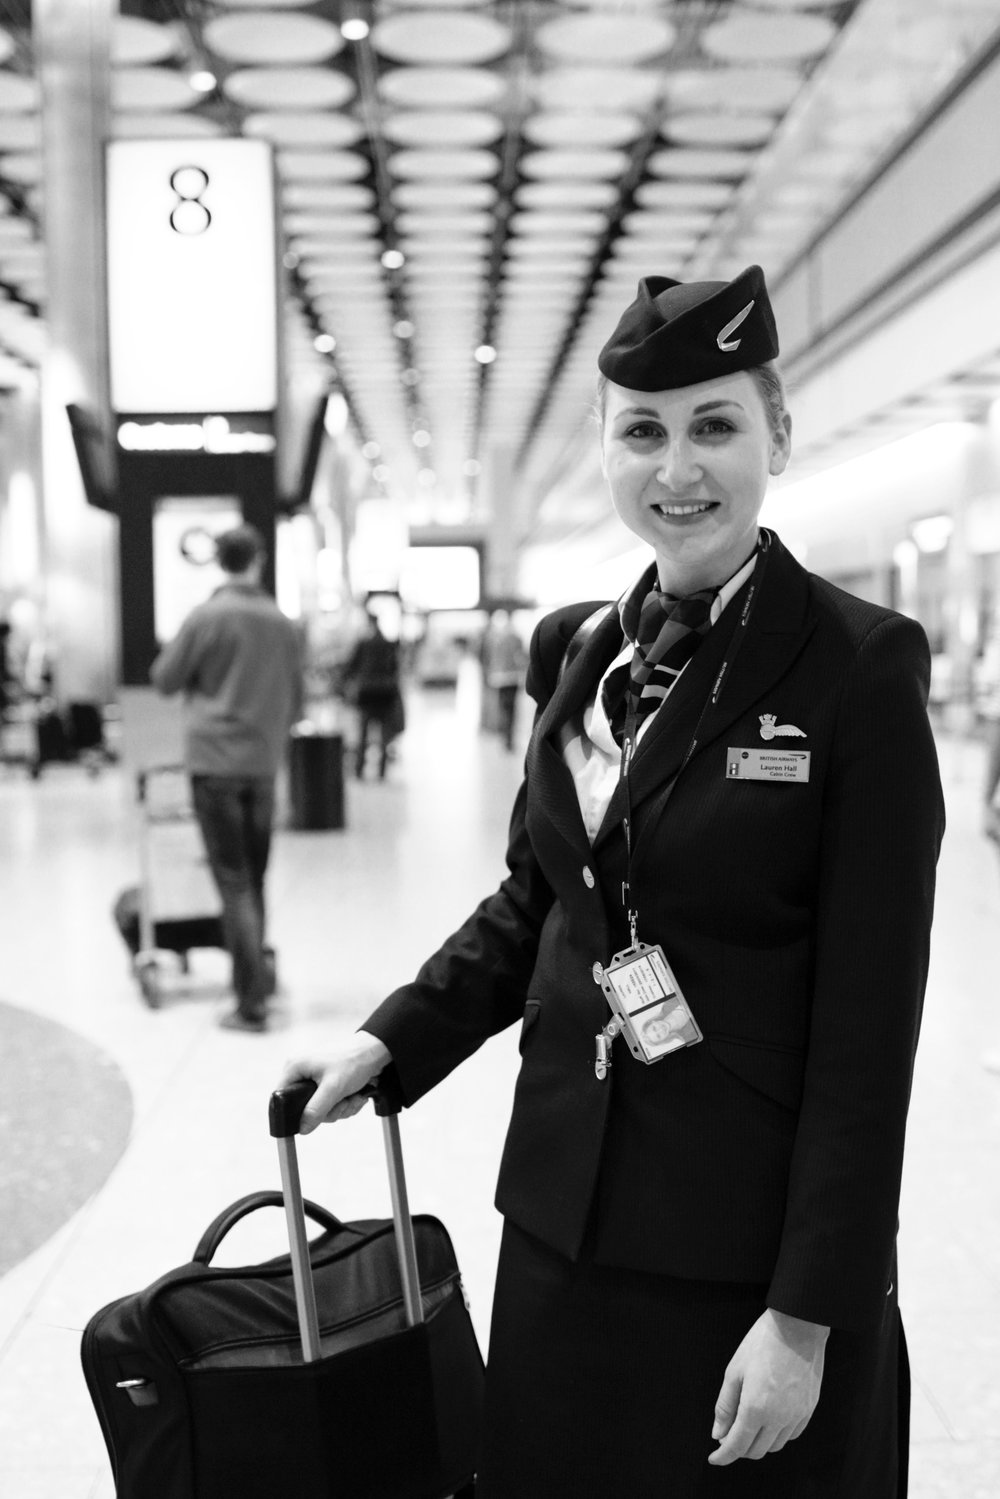 Lauren was very kind to let me take her #portrait straight after a busy night flying from Singapore to London.